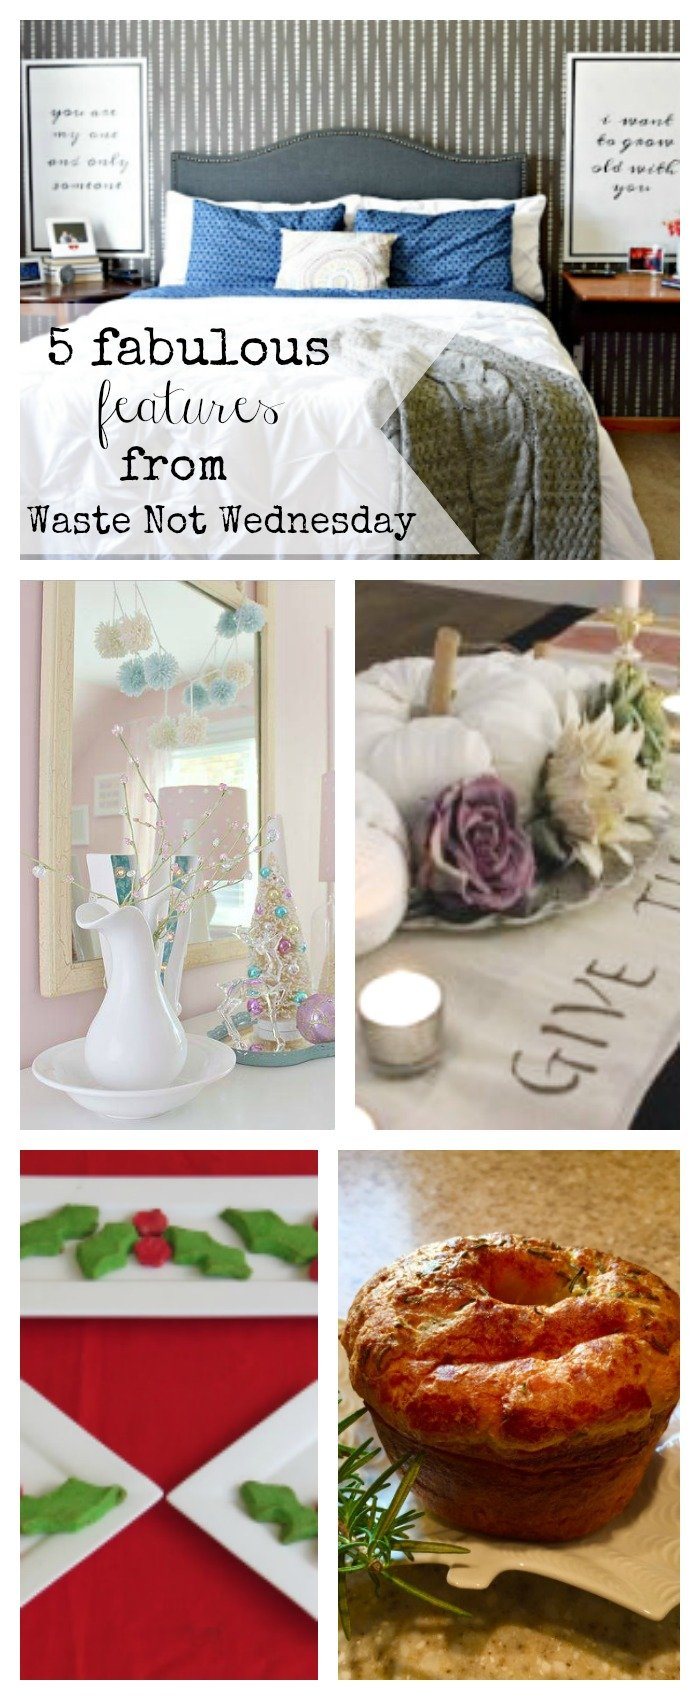 Features from our fun Waste Not Wednesday-25 DIY, Craft, Home Decor and Recipe party this week! Be sure to join us and share your DIY, Craft, Home Decor and favourite recipes! | www.raggedy-bits.com | www.mythriftyhouse.com | www.smallhomesoul.com | www.gratefullyvintage.com